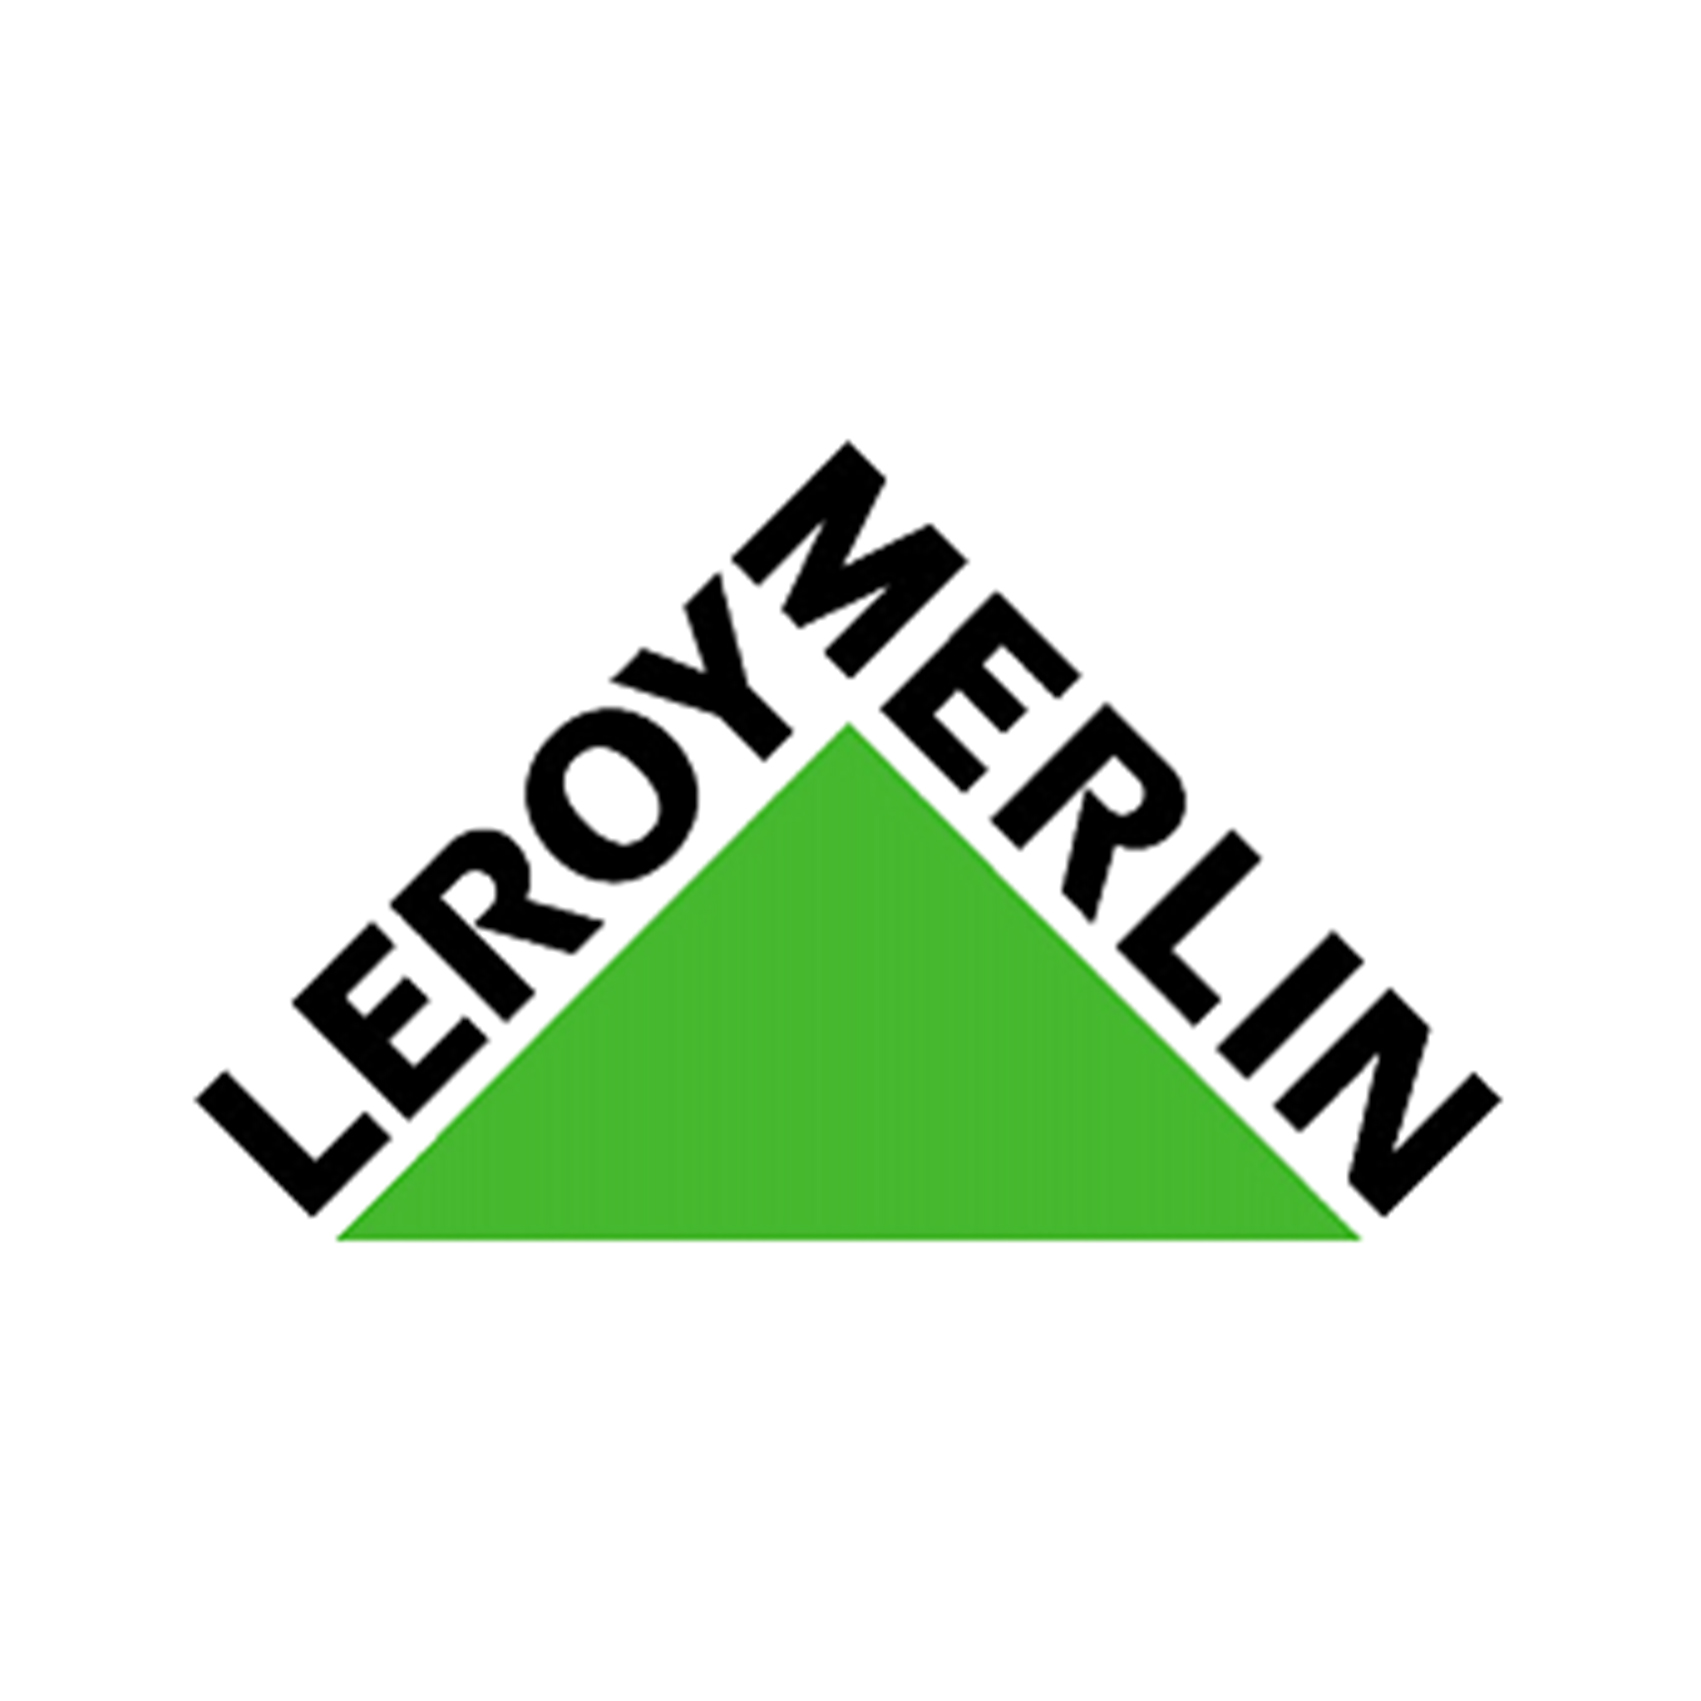 Leroy Merlin Magasin En France Leroy Merlin